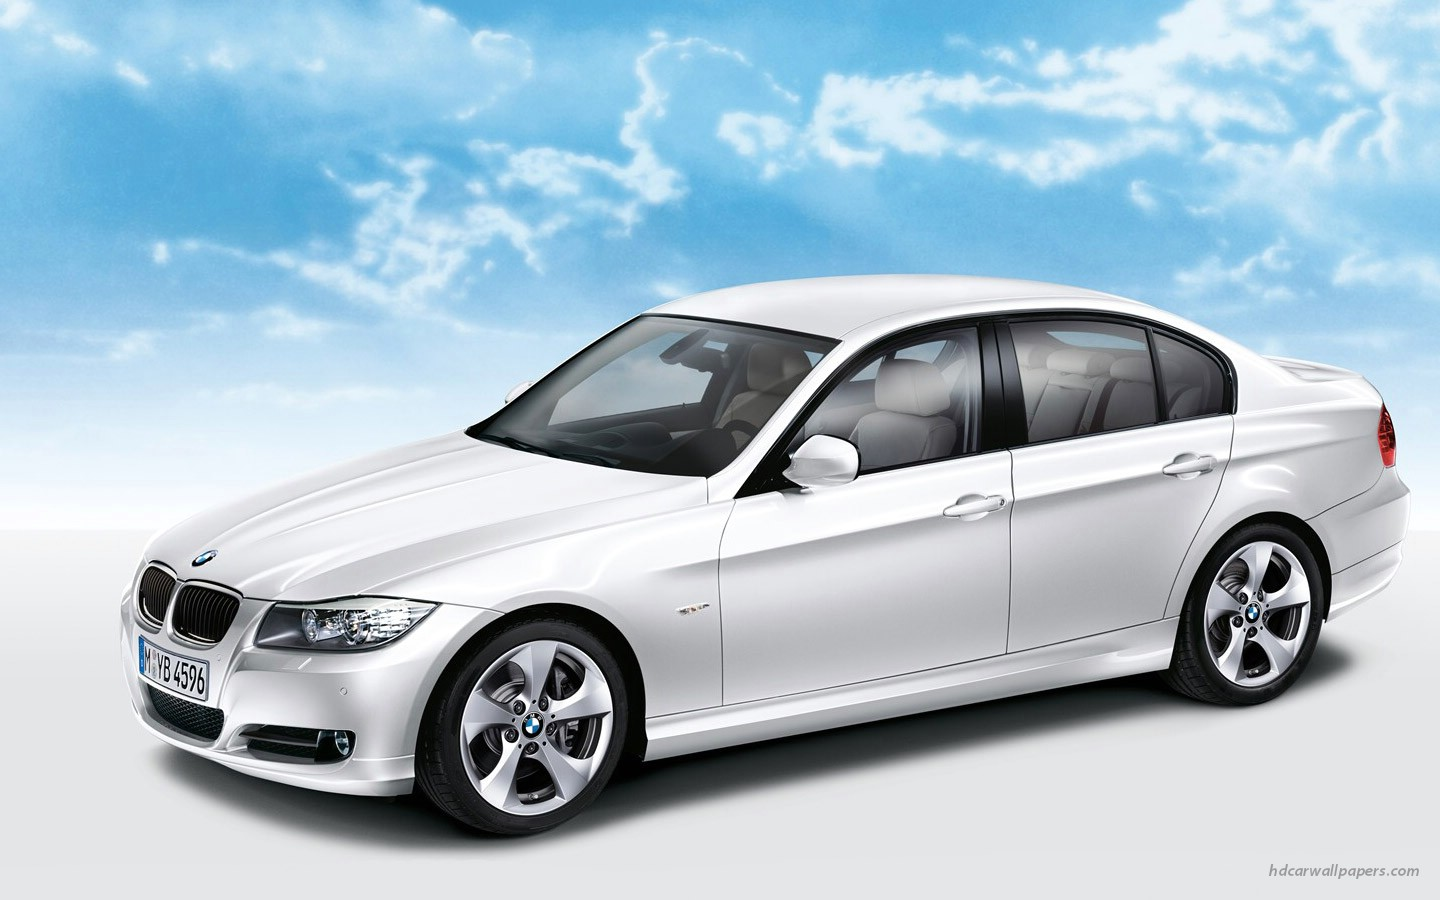 bmw 3 series 2010 review amazing pictures and images. Black Bedroom Furniture Sets. Home Design Ideas